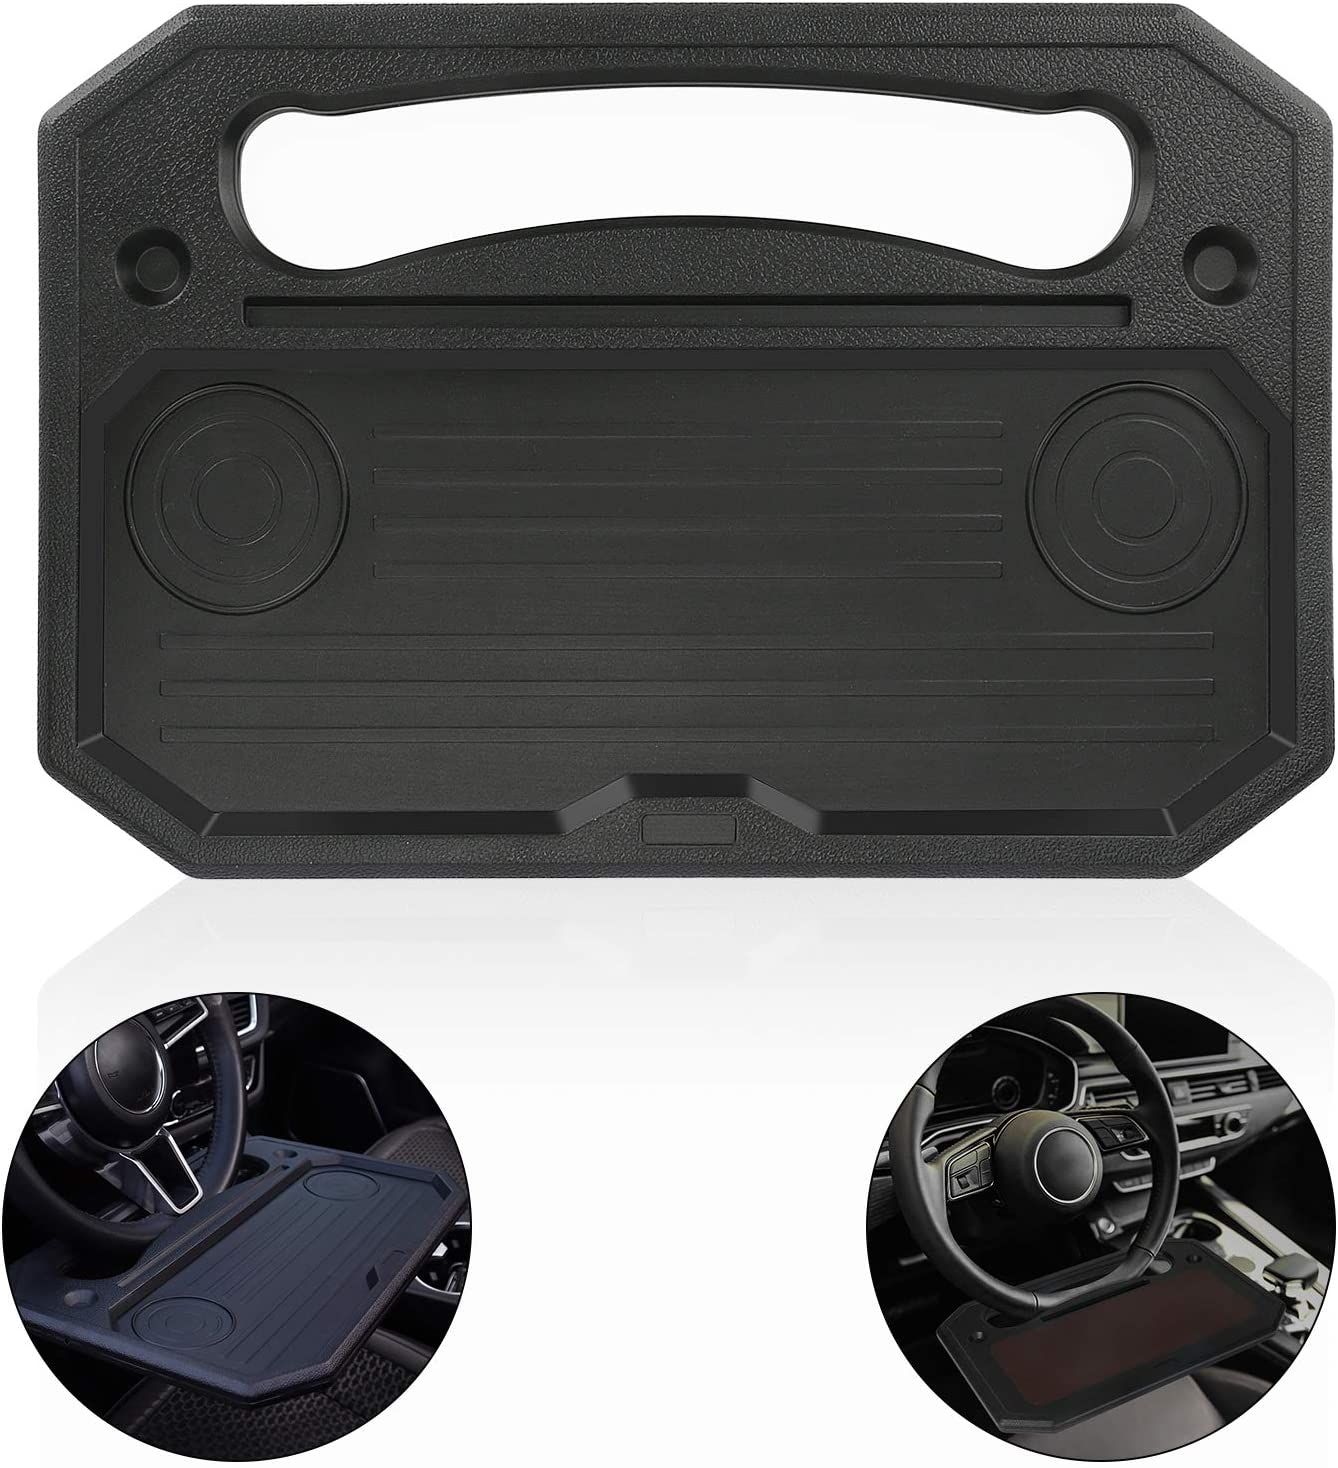 WIOR Steering Wheel Tray/Desk, Two-Sided Car Tray for Food Laptop Computer, Portable Auto Travel Car Desk for Eating Drinking Writing Working, Multifunctional Car Accessories, Fits Most Vehicles-Black